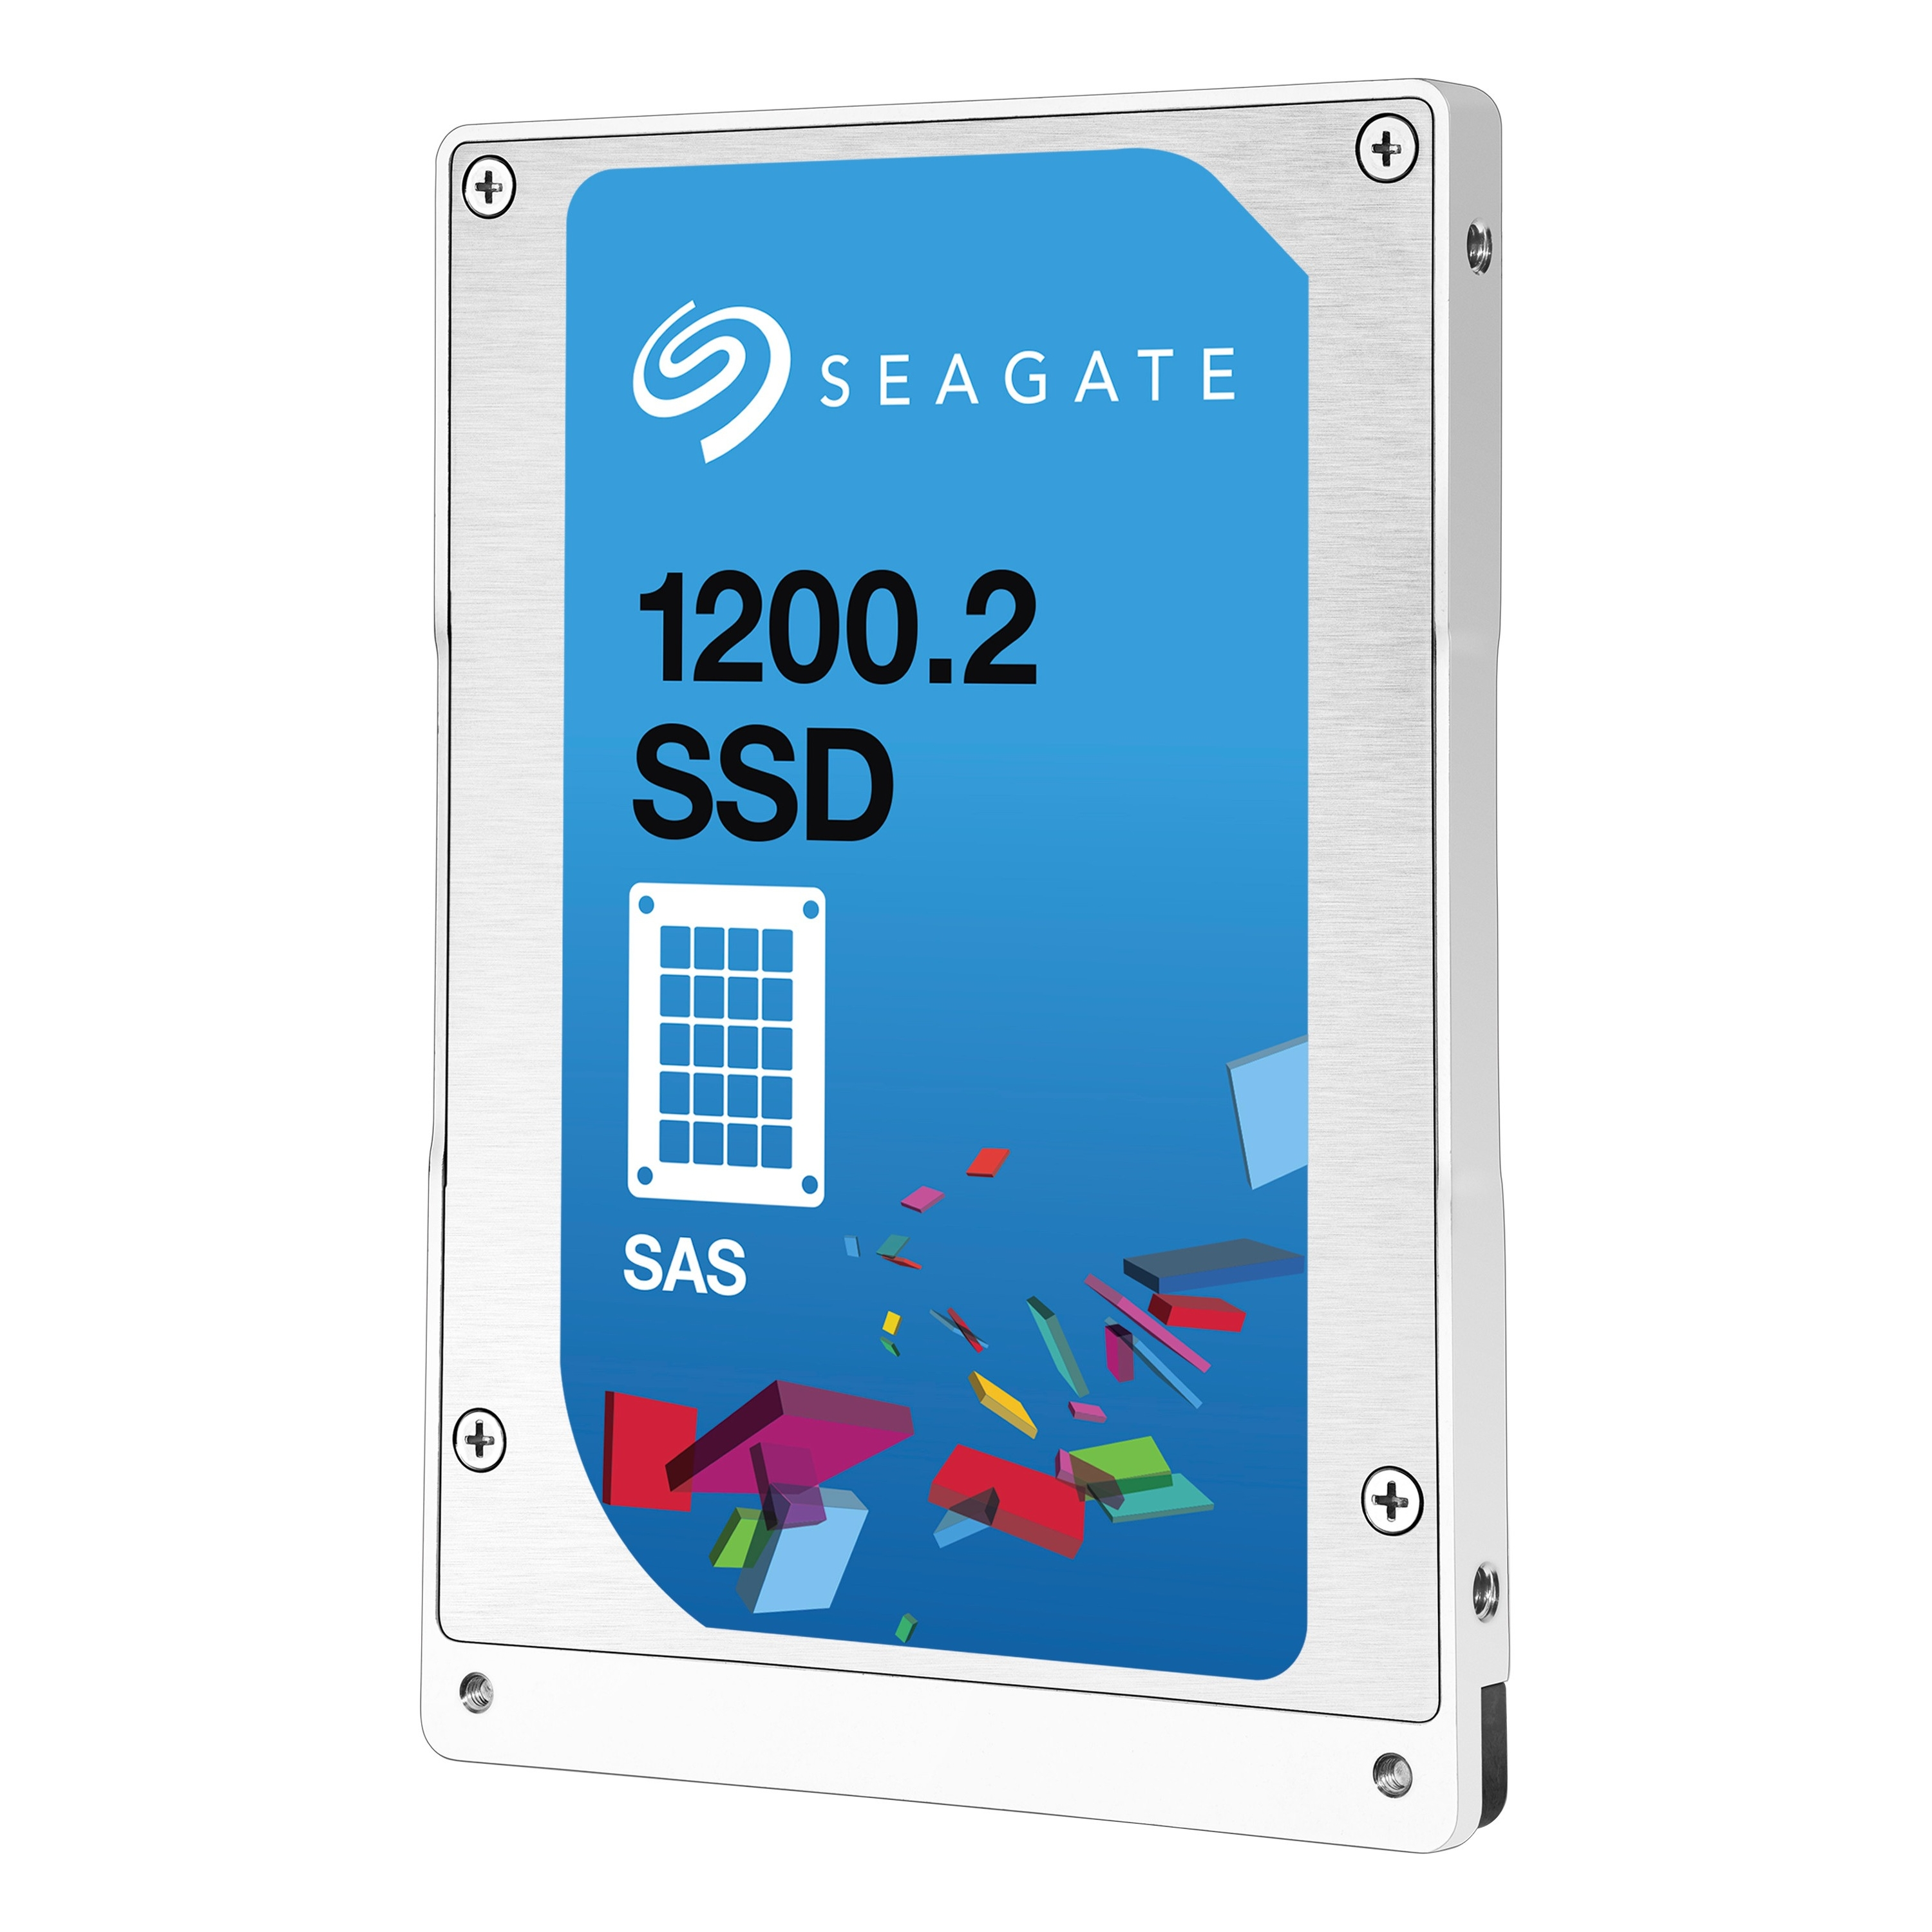 """Seagate 1200.2 St800fm0213 800 Gb 2.5"""" Internal Solid State Drive Sas 512 Mb Buffer (st800fm0213) by Seagate"""